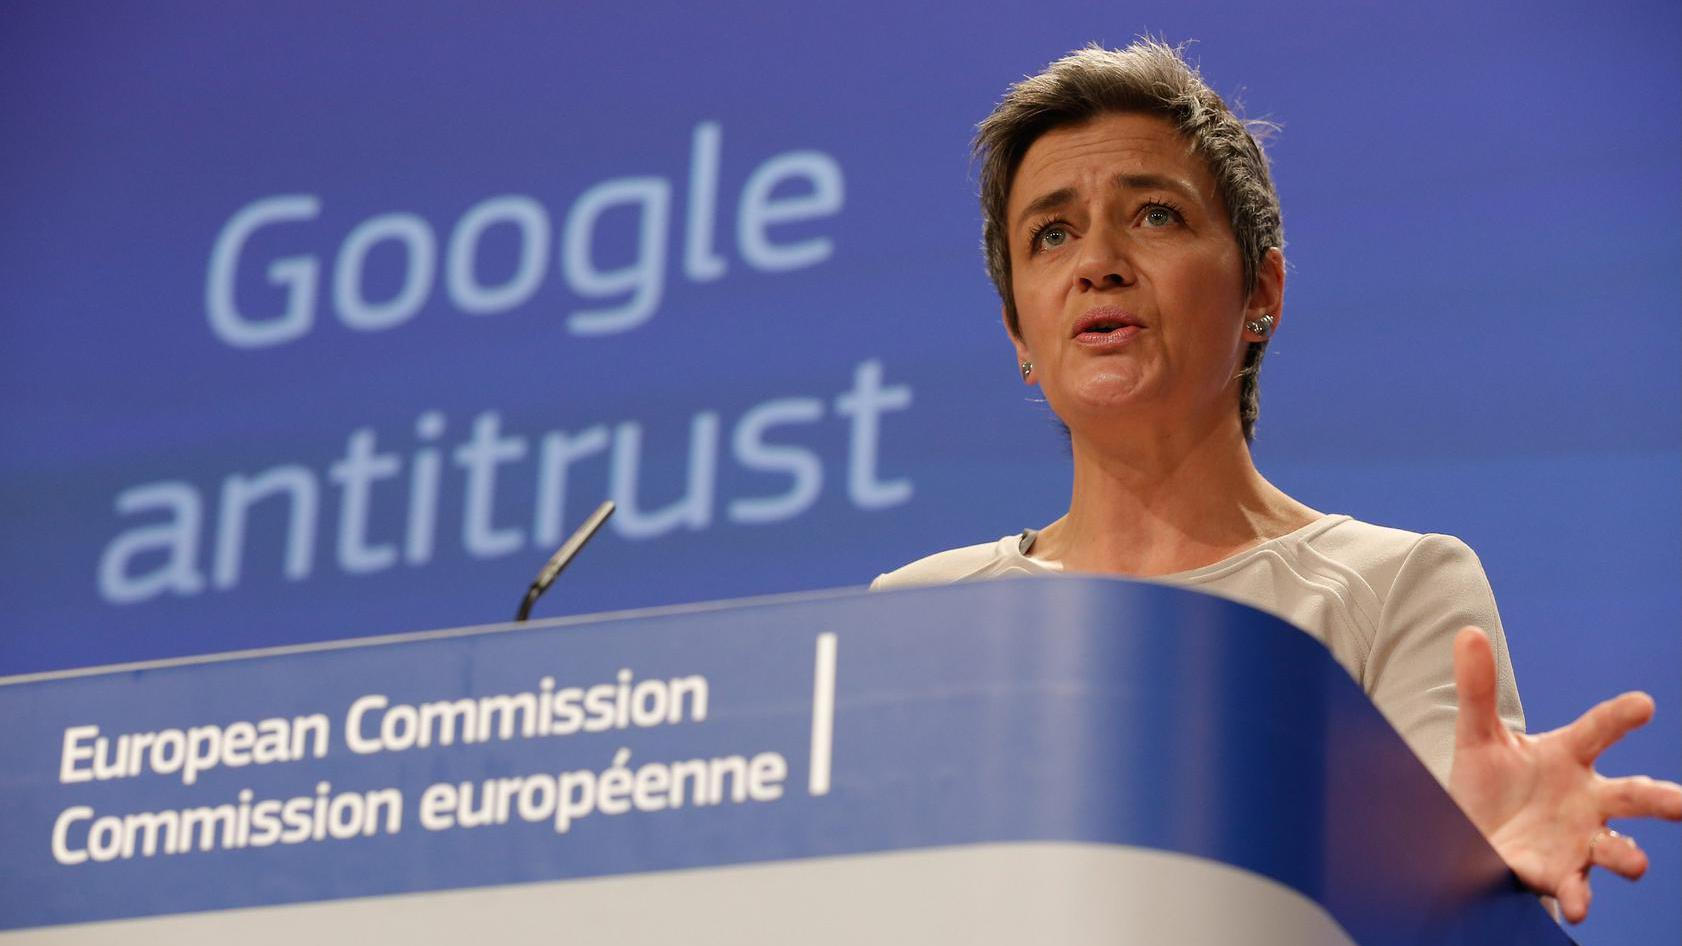 Denmark's EU Commissioner for Competition Margrethe Vestager gives a news conference after a college meeting at the European Commission Headquarters in Brussels,15 April 2015. The EU Commission sends Statement of Objections to Google on comparison shopping service and opens separate formal investigation on Android. EPA/JULIEN WARNAND